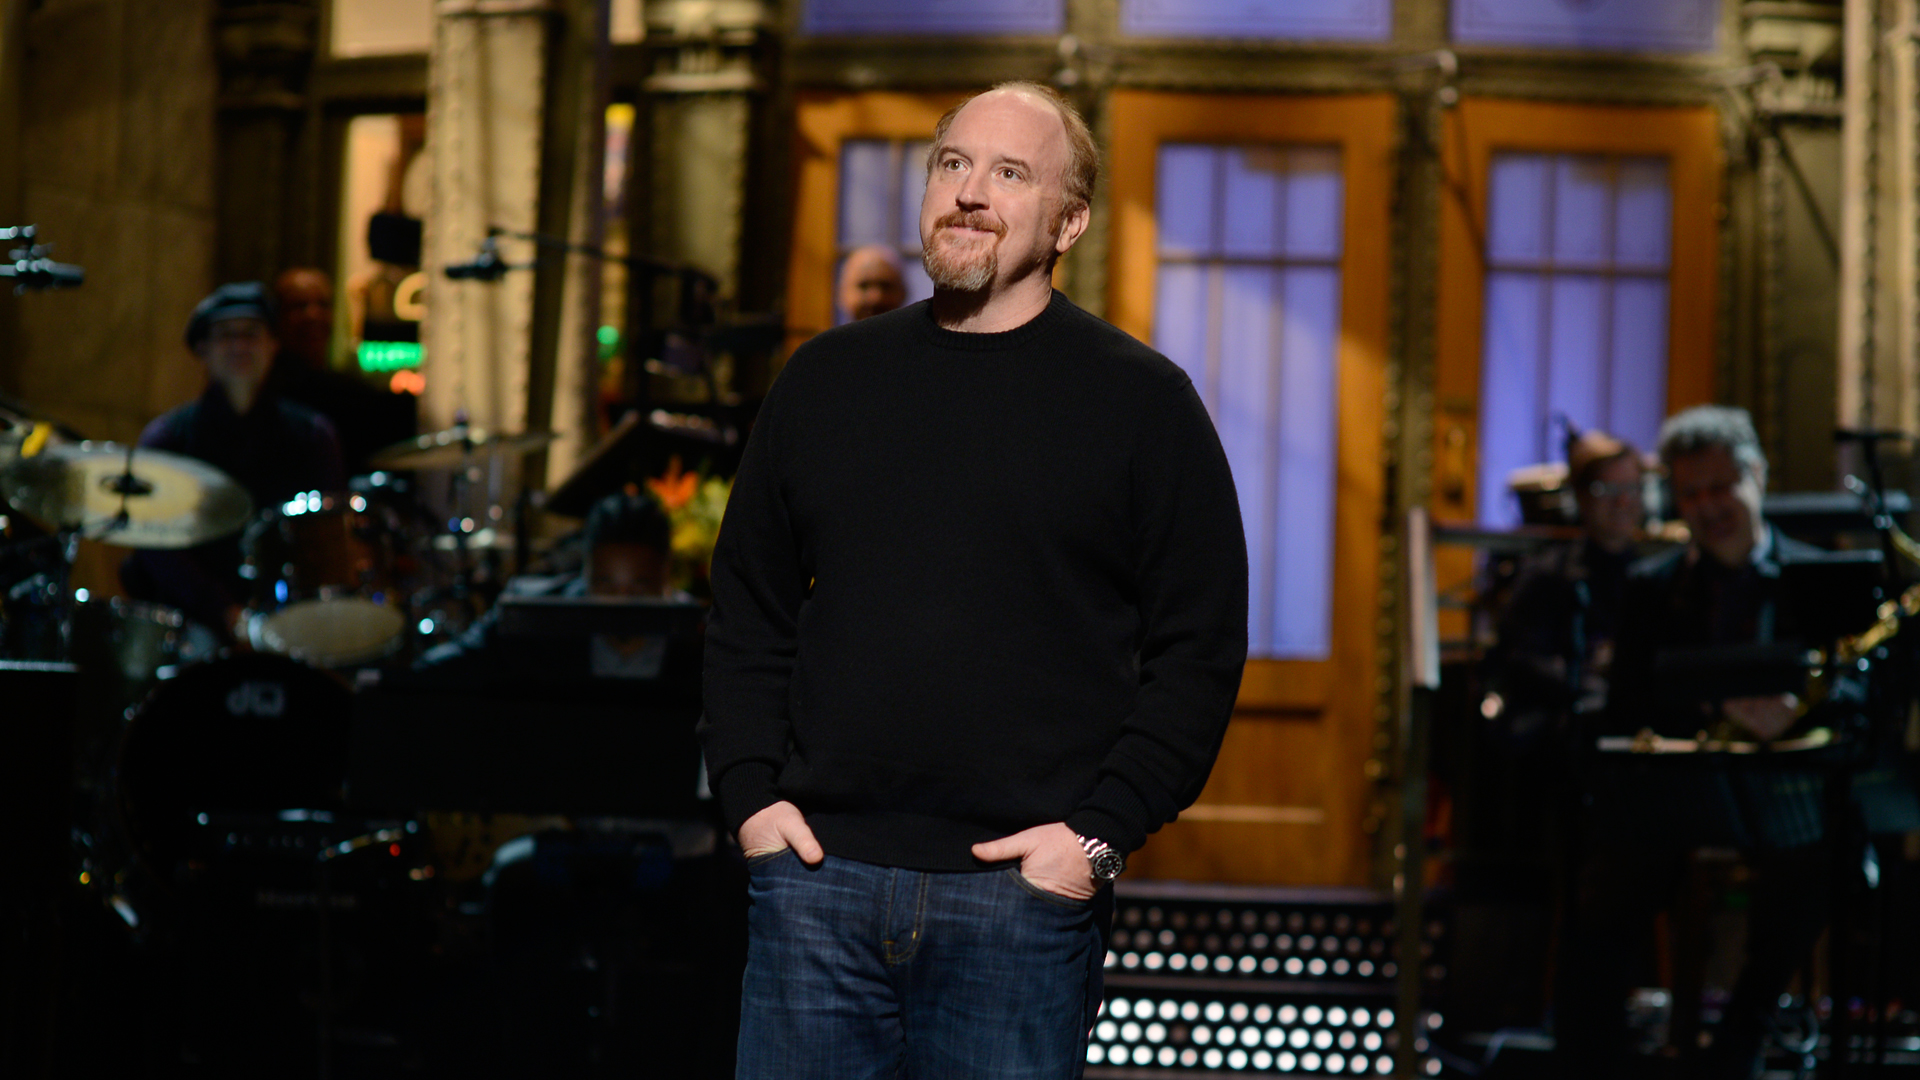 Watch Monologue: Louis C.K. on Third World Hunger and Wife Beater Shirts From Saturday Night Live - NBC.com